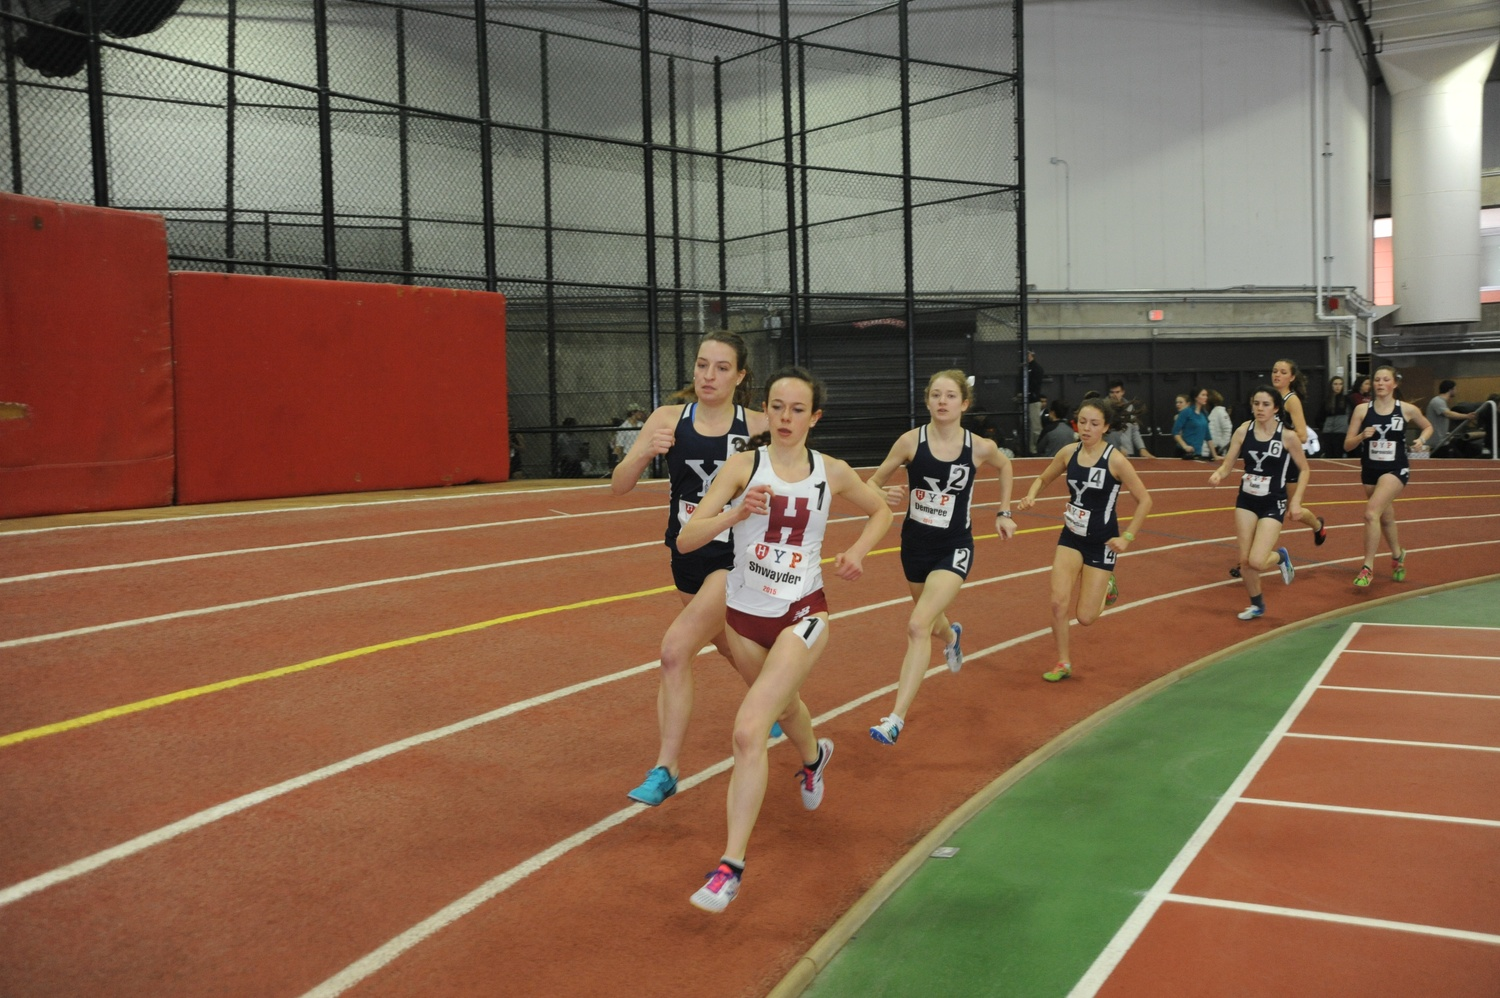 Junior distance runner Elianna Shwayder, pictured in 2015.